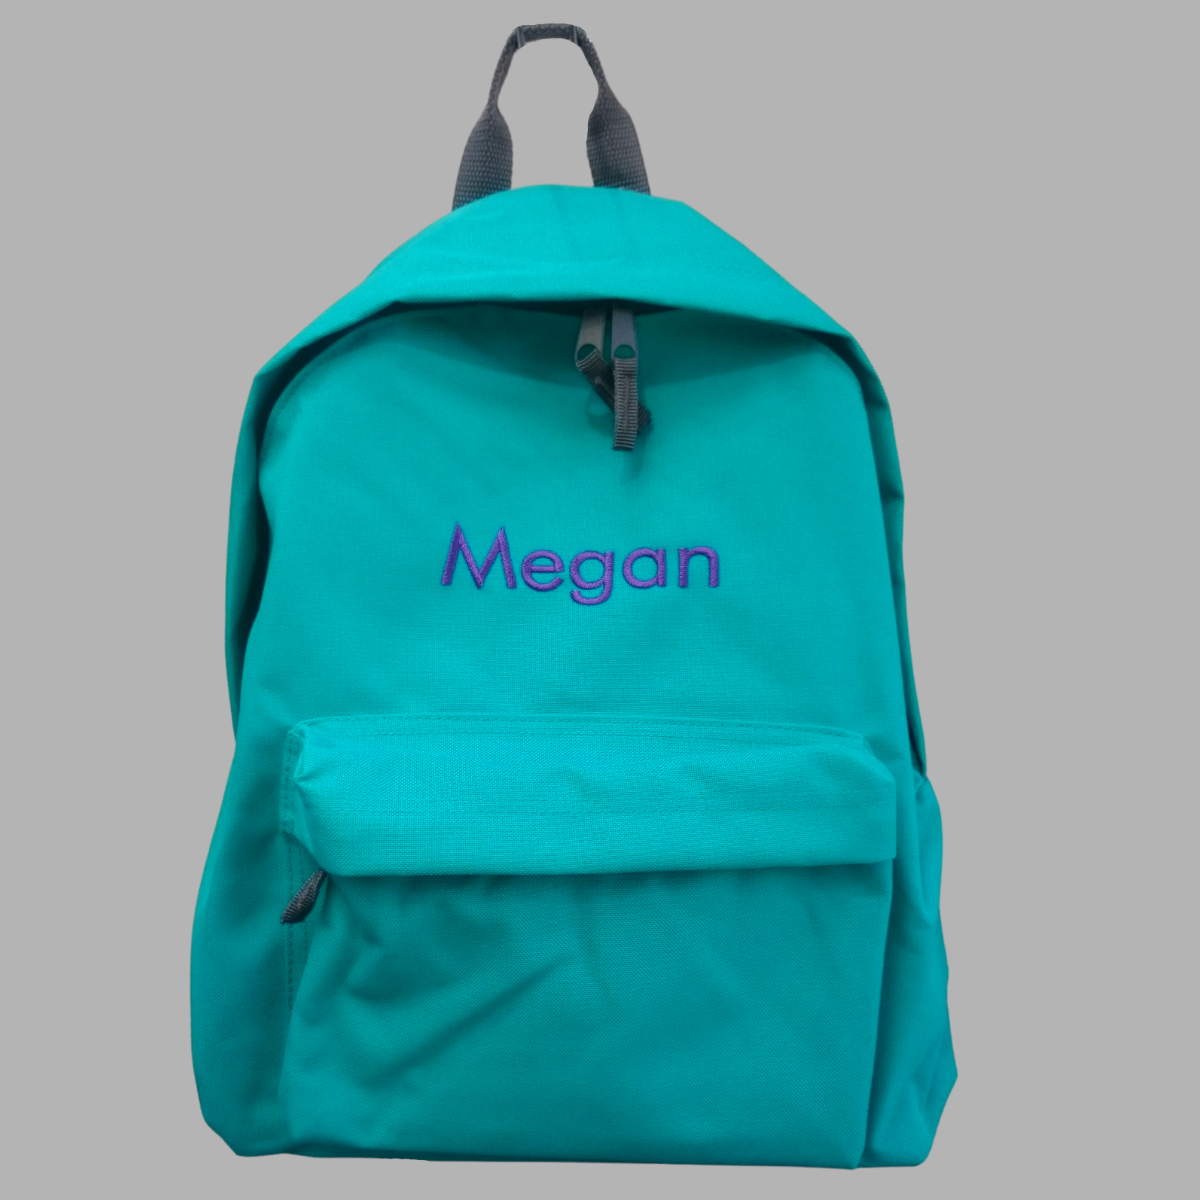 Personalised school rucksack in emerald green with grey zips and trim with our modern font choice.  The rucksack is embroidered with a name of your choice in a colour of your choice.